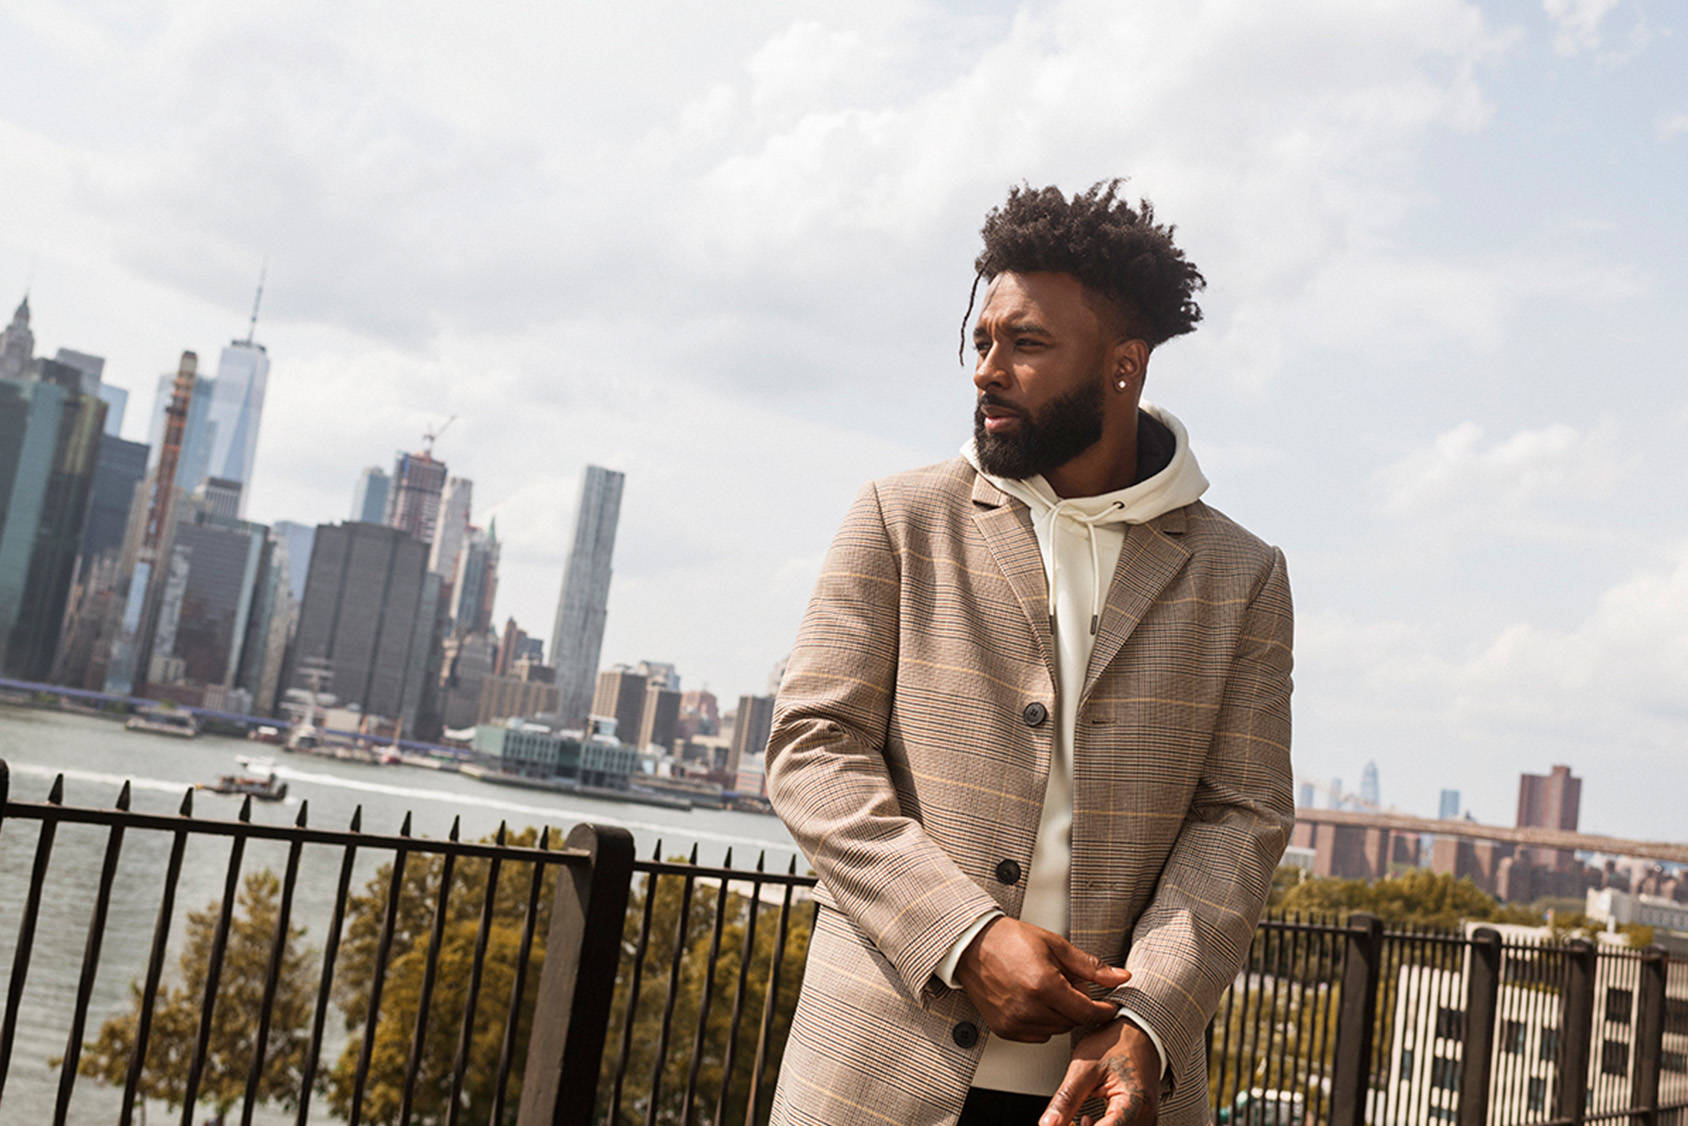 H&M Fall Fashion Trends with Jarvis Landry